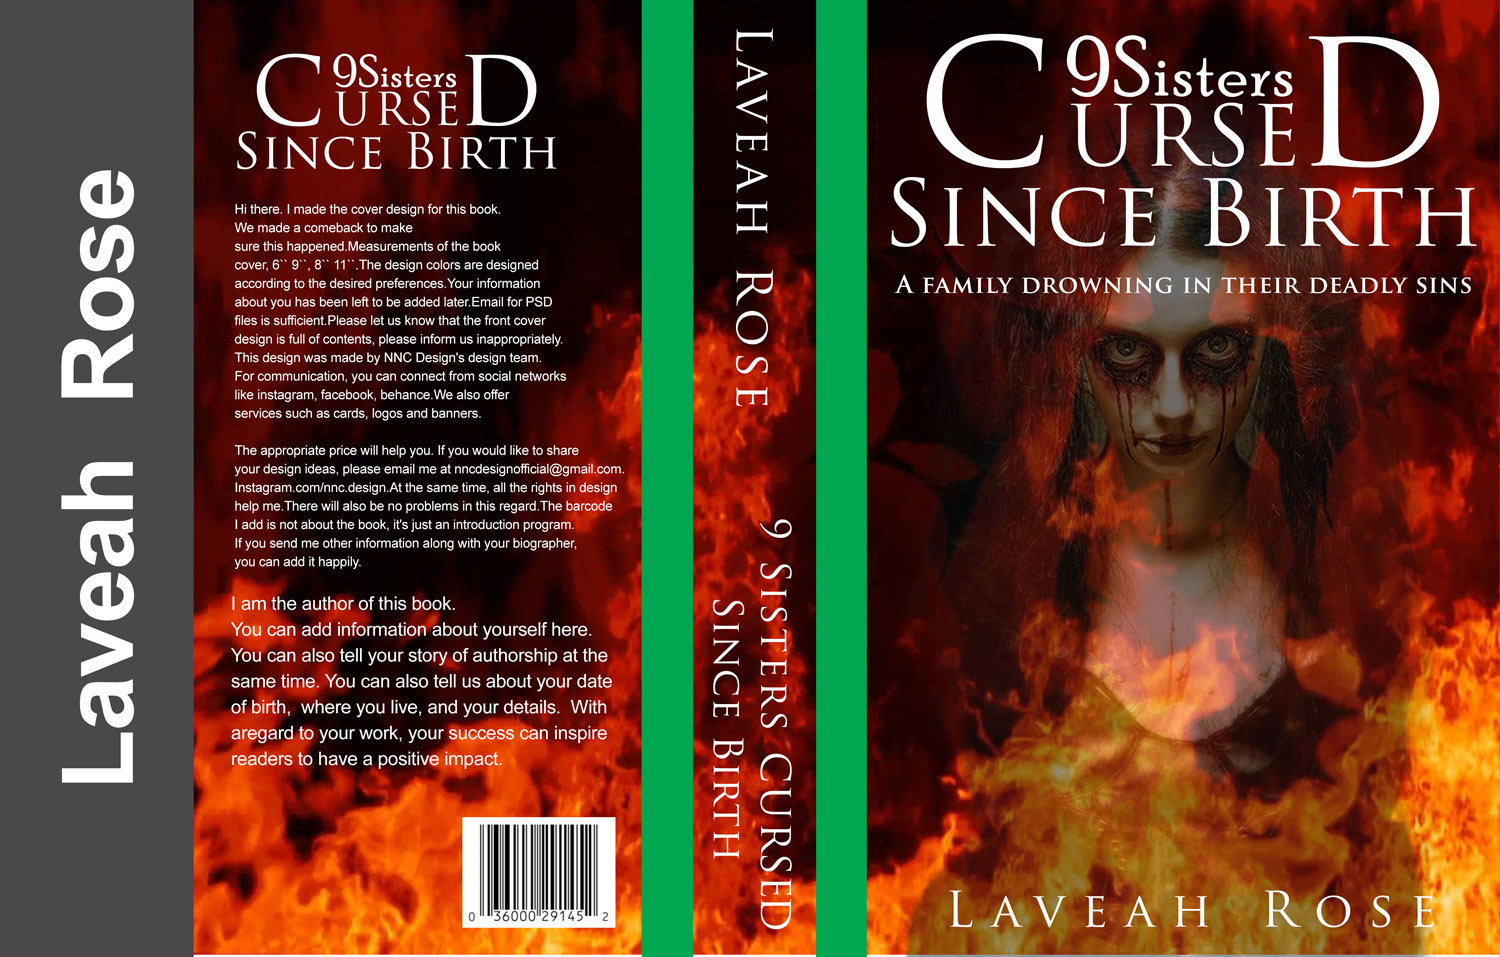 Serious professional book cover design for 9 sisters cursed since book cover design by designernnc for 9 sisters cursed since birth design 14525219 solutioingenieria Images